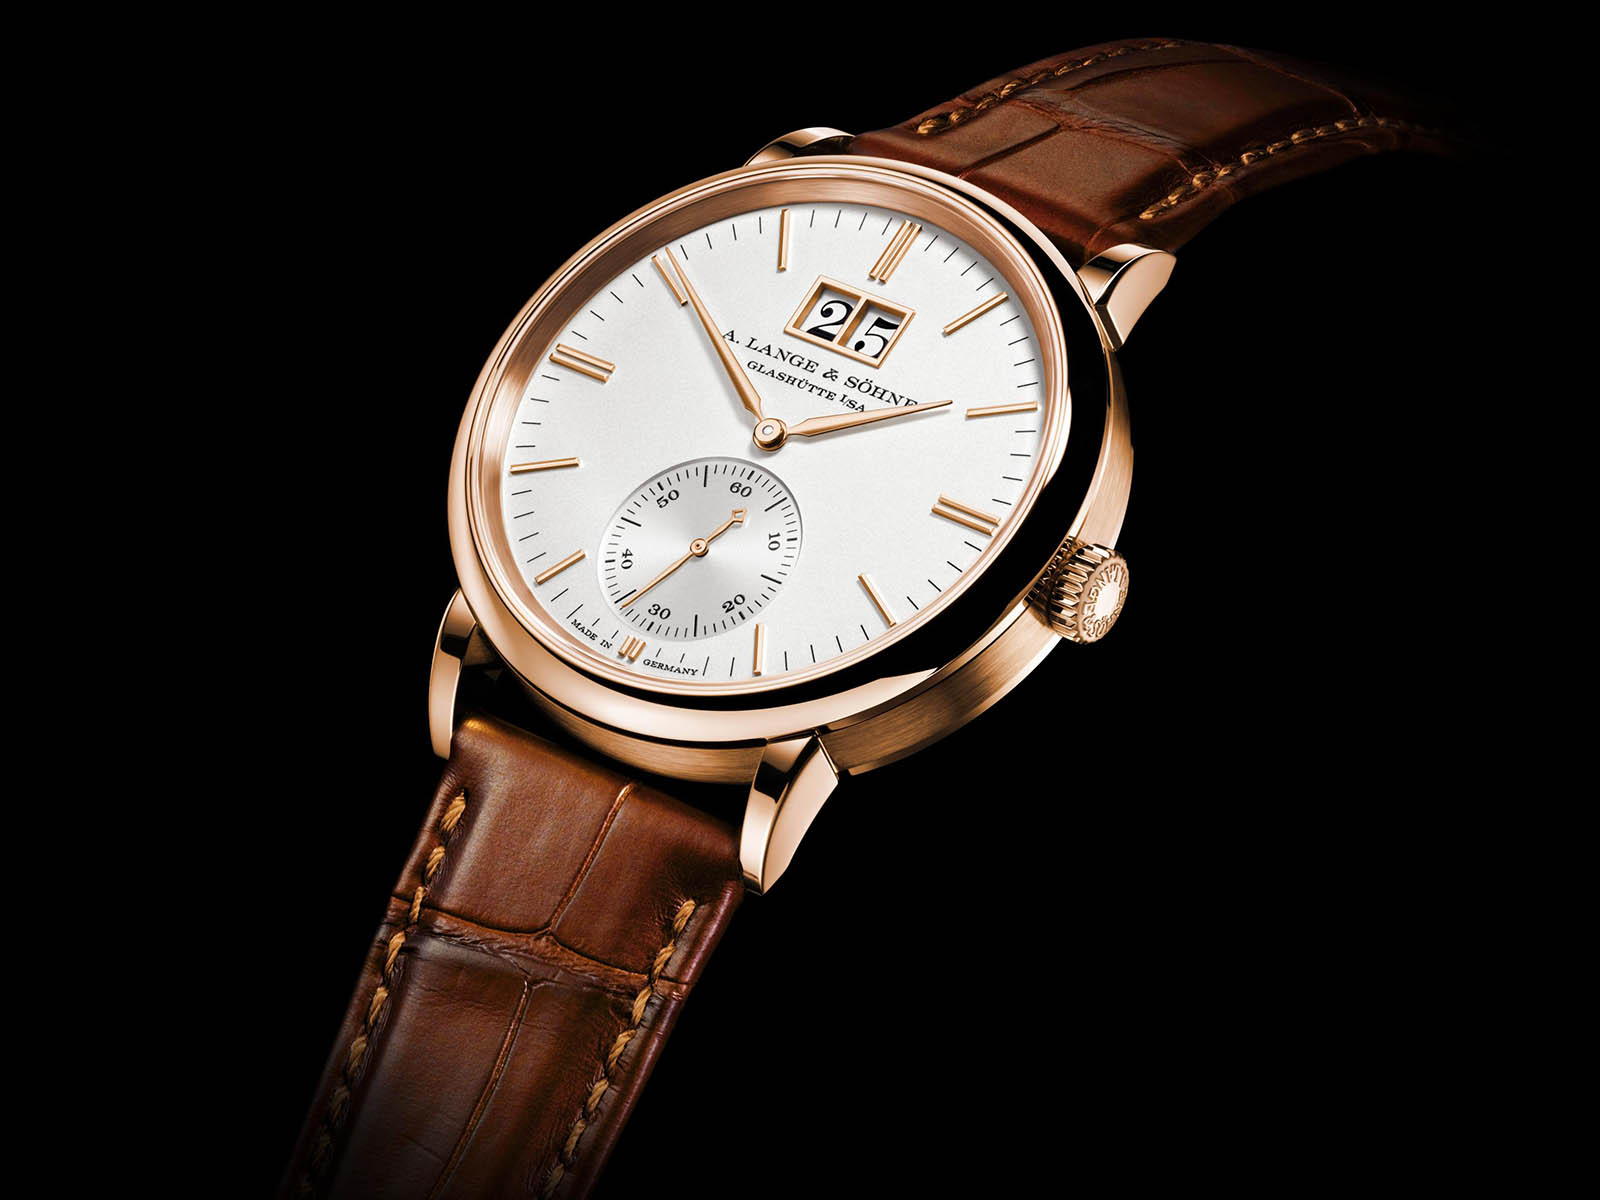 381-032-a-lange-sohne-saxonia-outsize-date-pink-gold-3.jpg